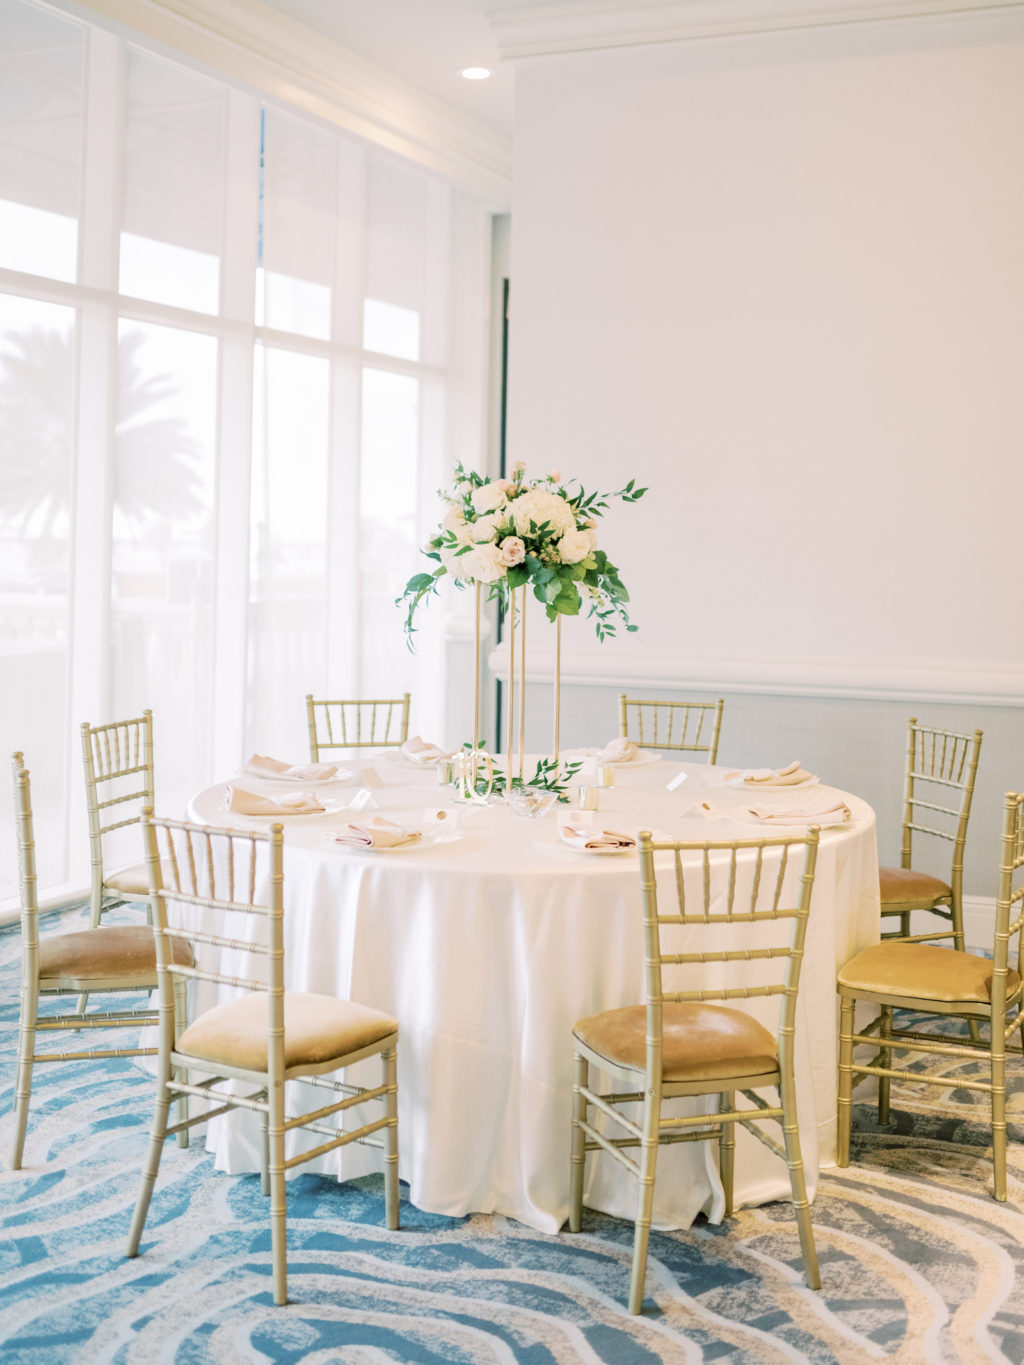 Timeless Romantic Wedding Reception Decor, Round Table with White Linen, Gold Chiavari Chairs, Tall White Floral and Greenery Centerpiece | Tampa Bay Wedding Planner Special Moments Event Planning | Wedding Venue Hyatt Regency Clearwater Beach | Wedding Rentals Kate Ryan Event Rentals